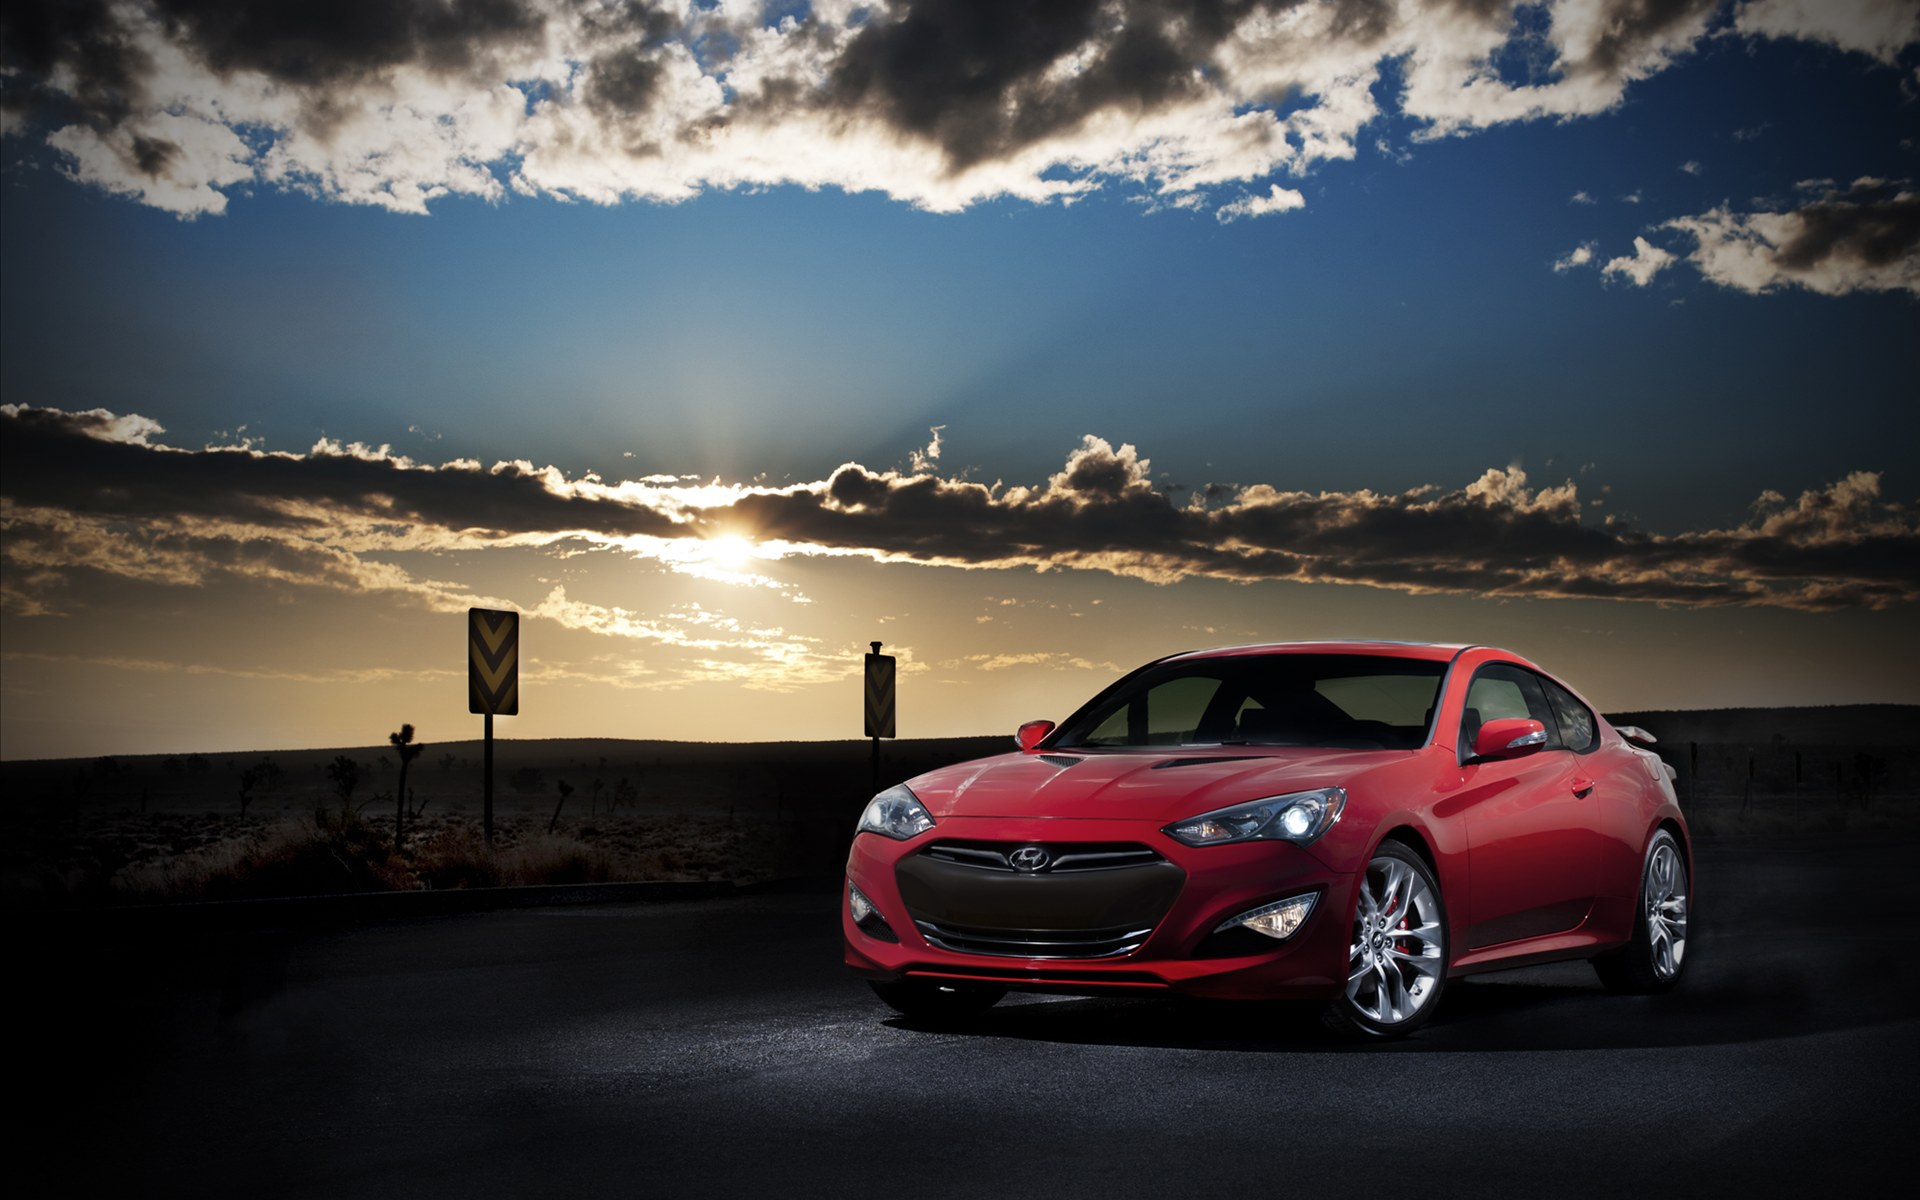 2013 Hyundai Genesis Coupe 2 Wallpaper Hd Car Wallpapers Id 2426